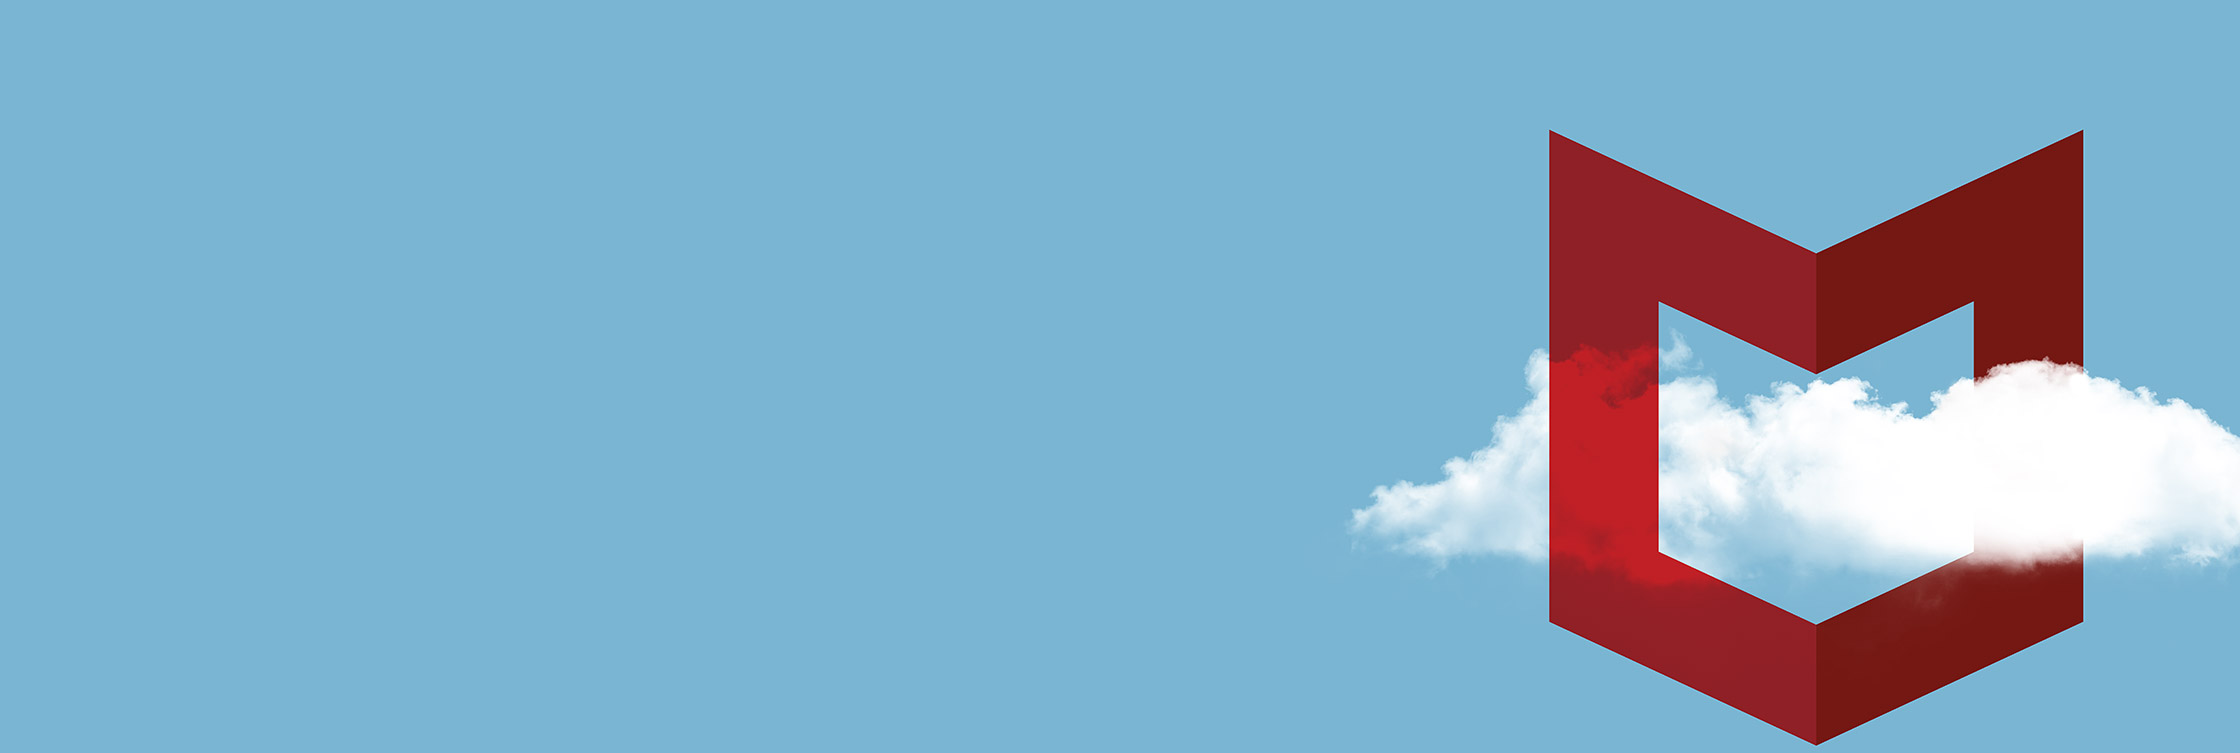 bg-cloud-security-blue